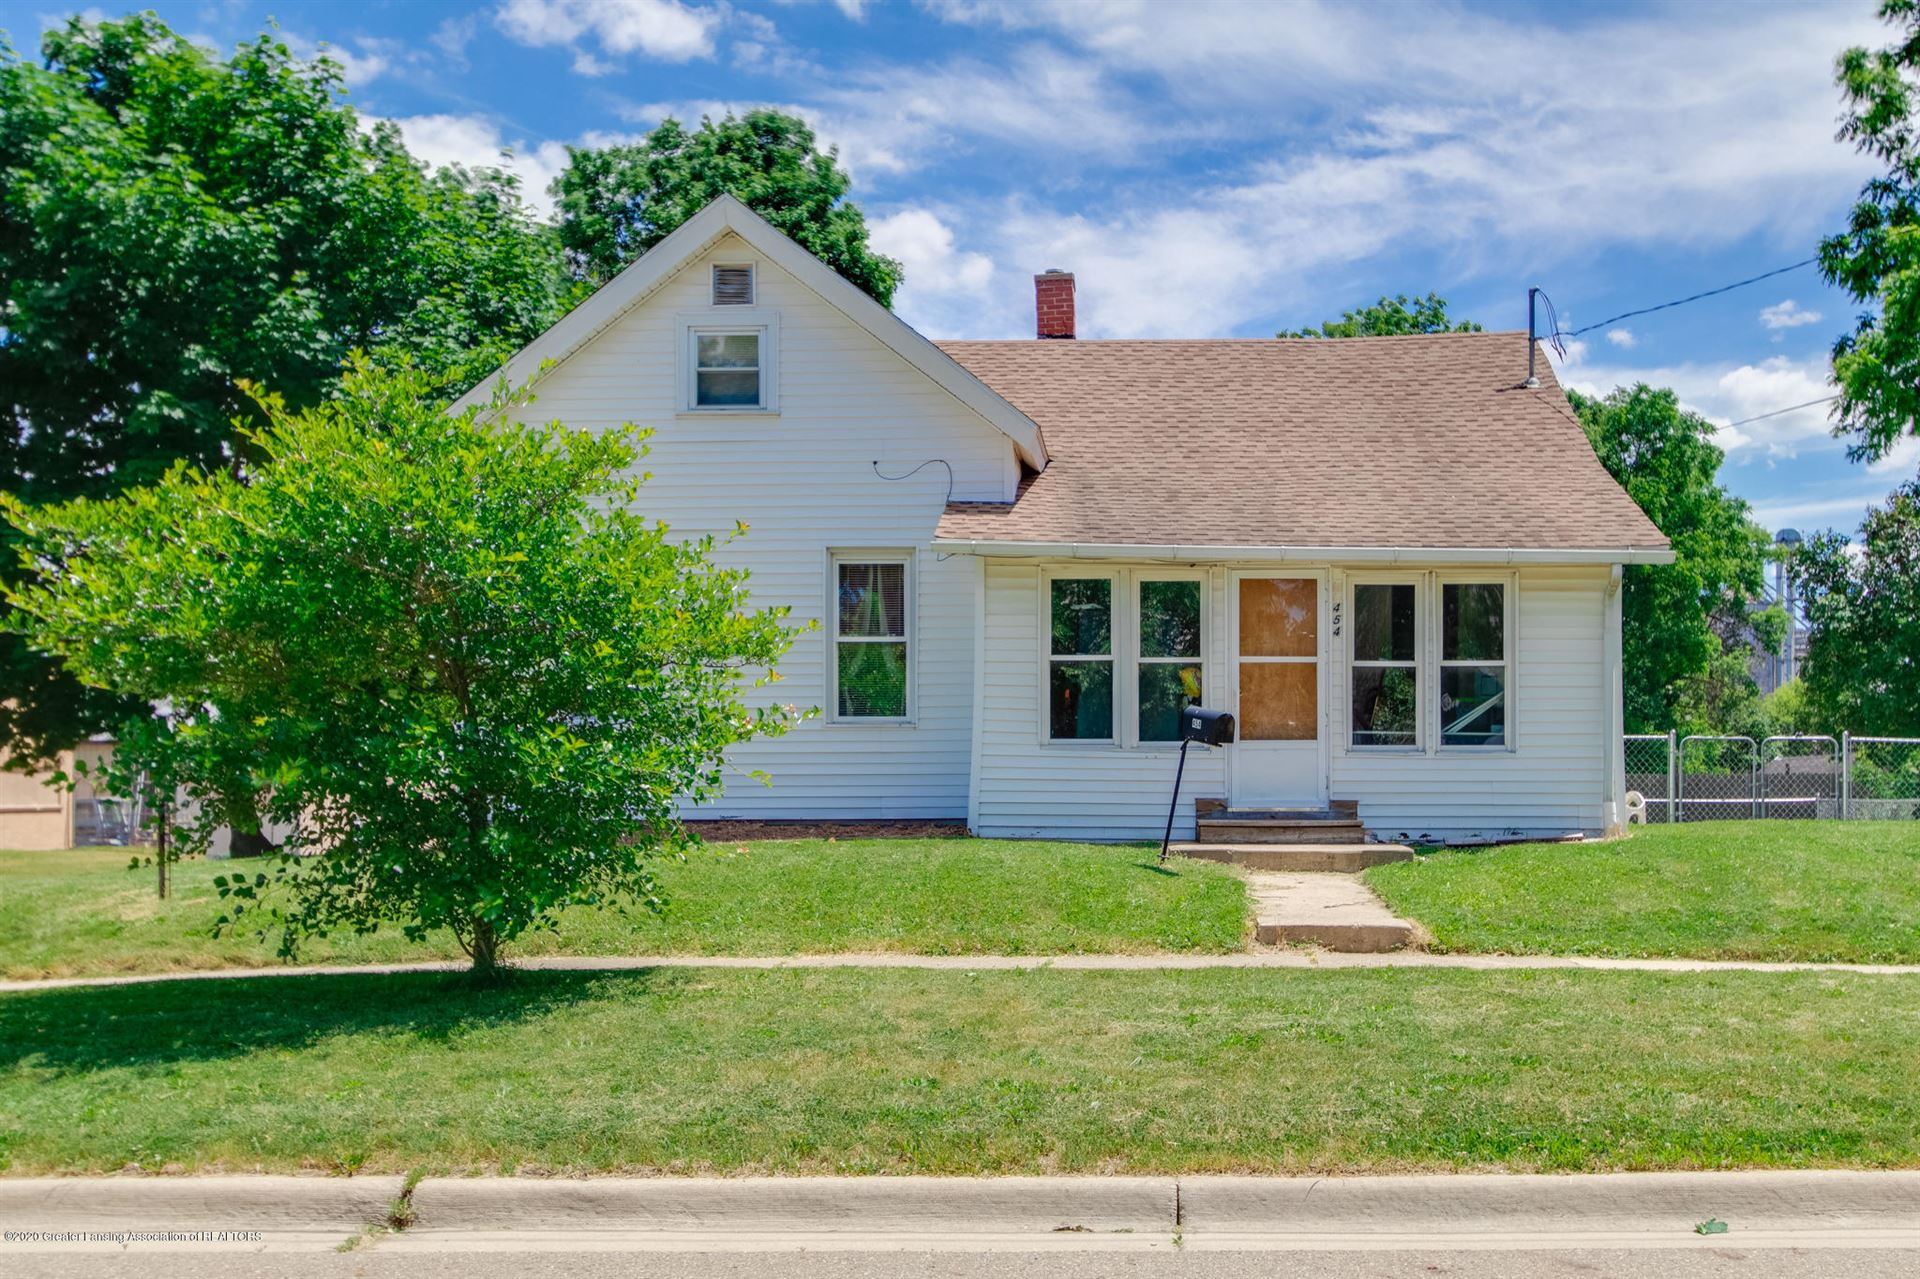 Photo of 454 N Sheldon Street, Charlotte, MI 48813 (MLS # 243775)